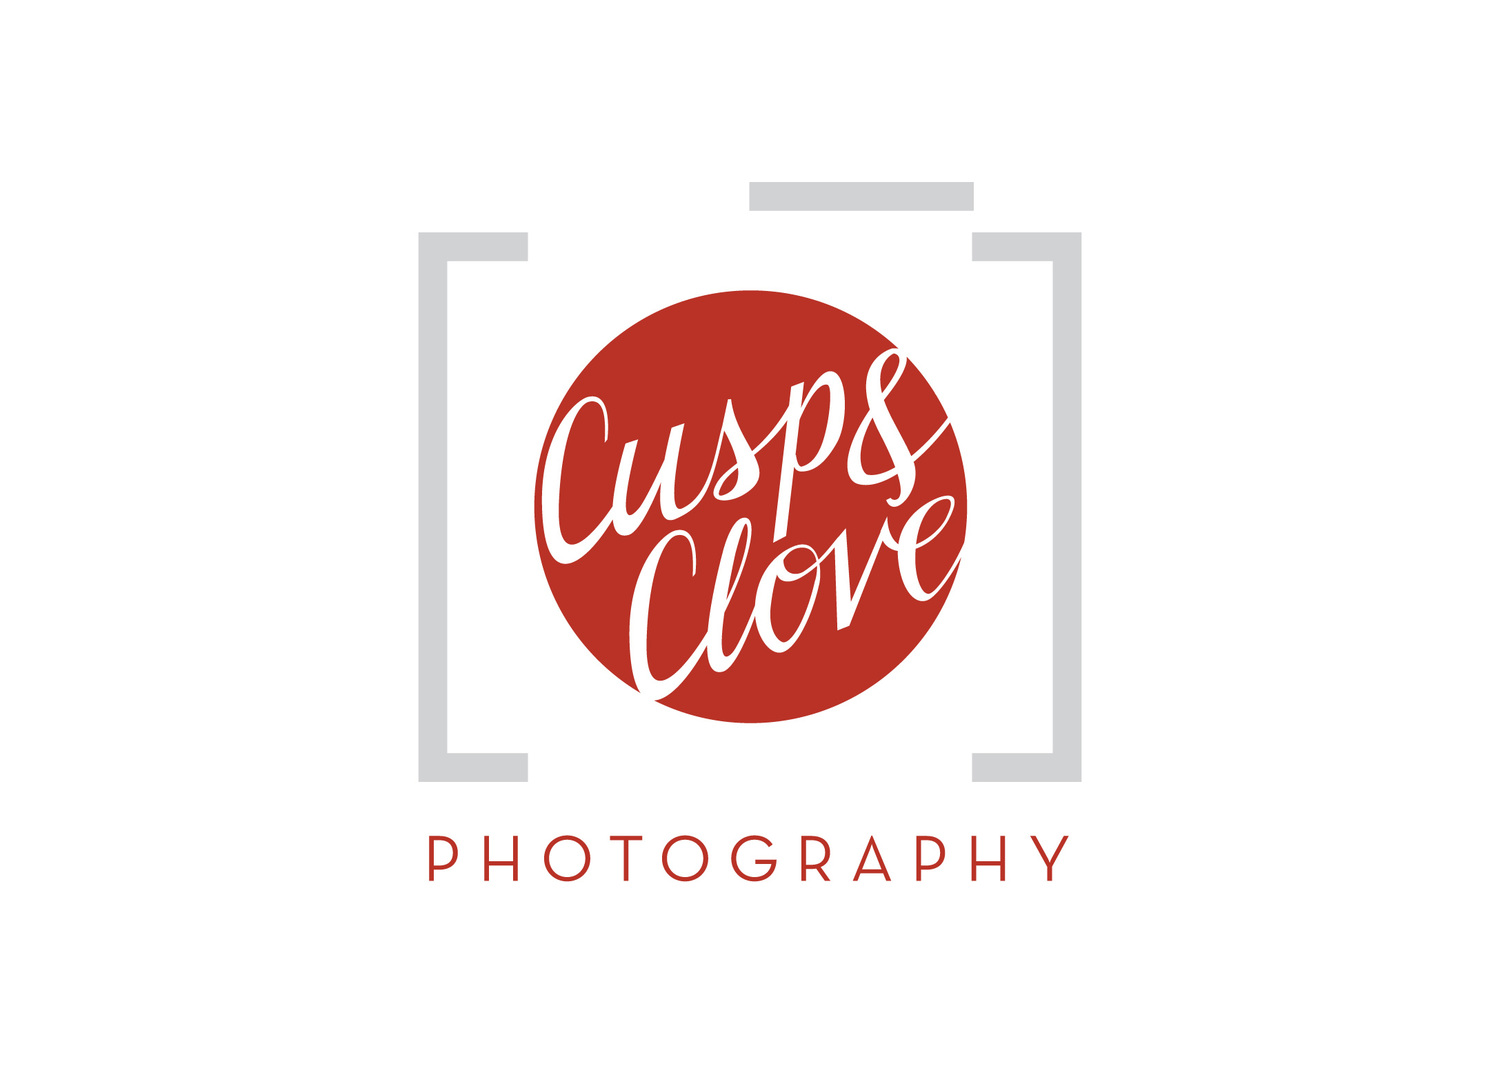 cusp and clove photography